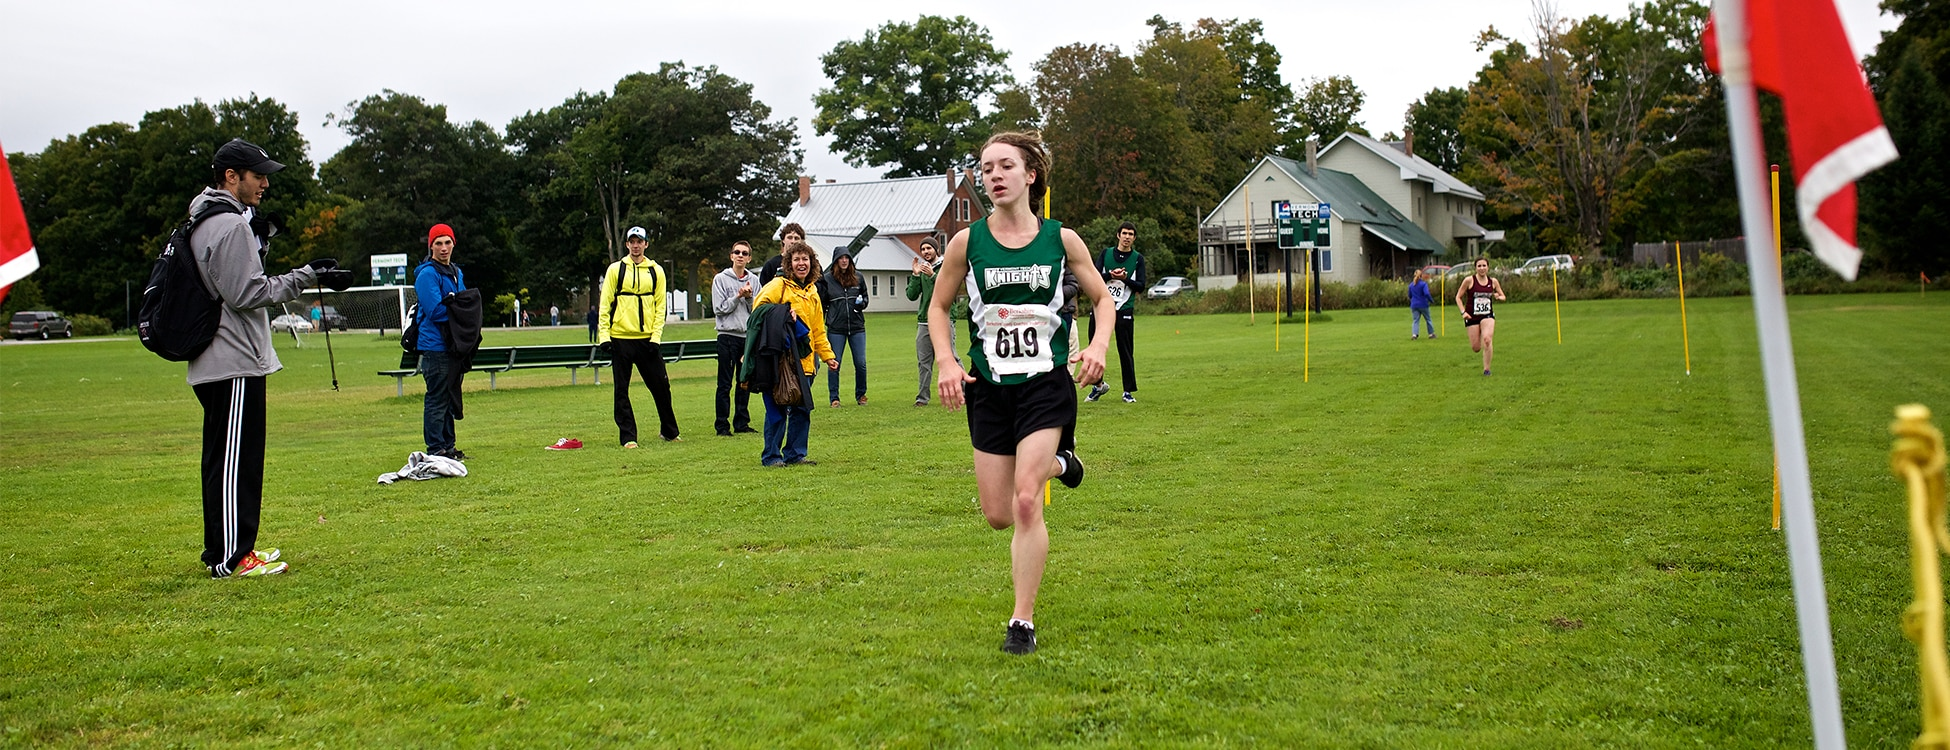 cross country, athletics, Rebecca Broadbent, running